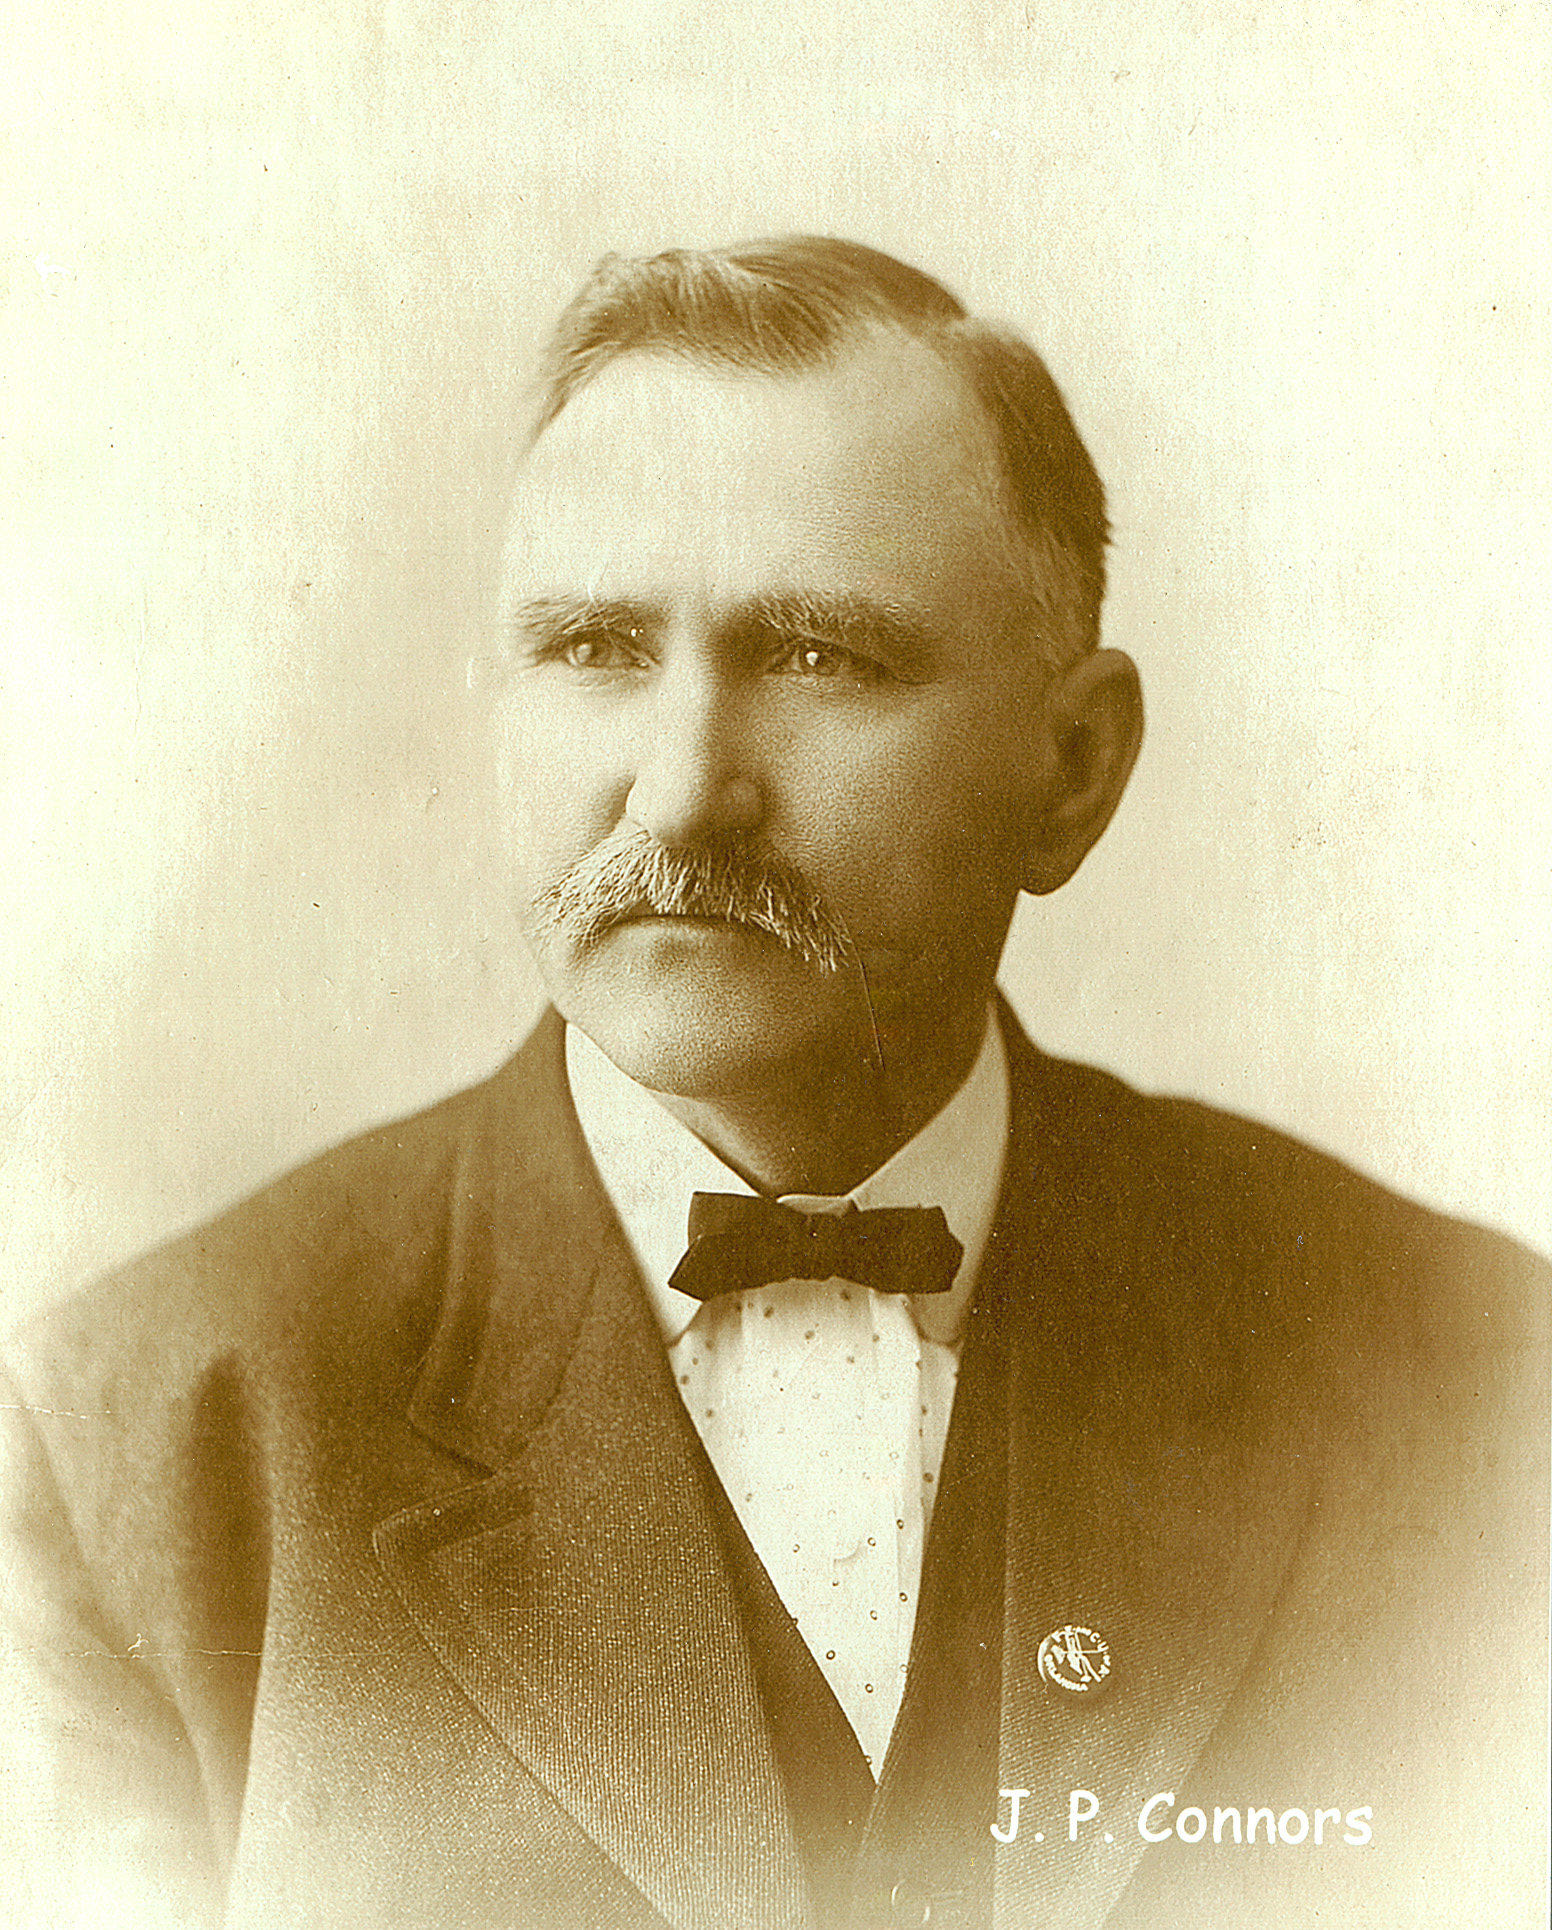 J.P. Connors  (1857 - 1942) Connors and Russell were both inducted into the Oklahoma Hall of Fame in 1932.